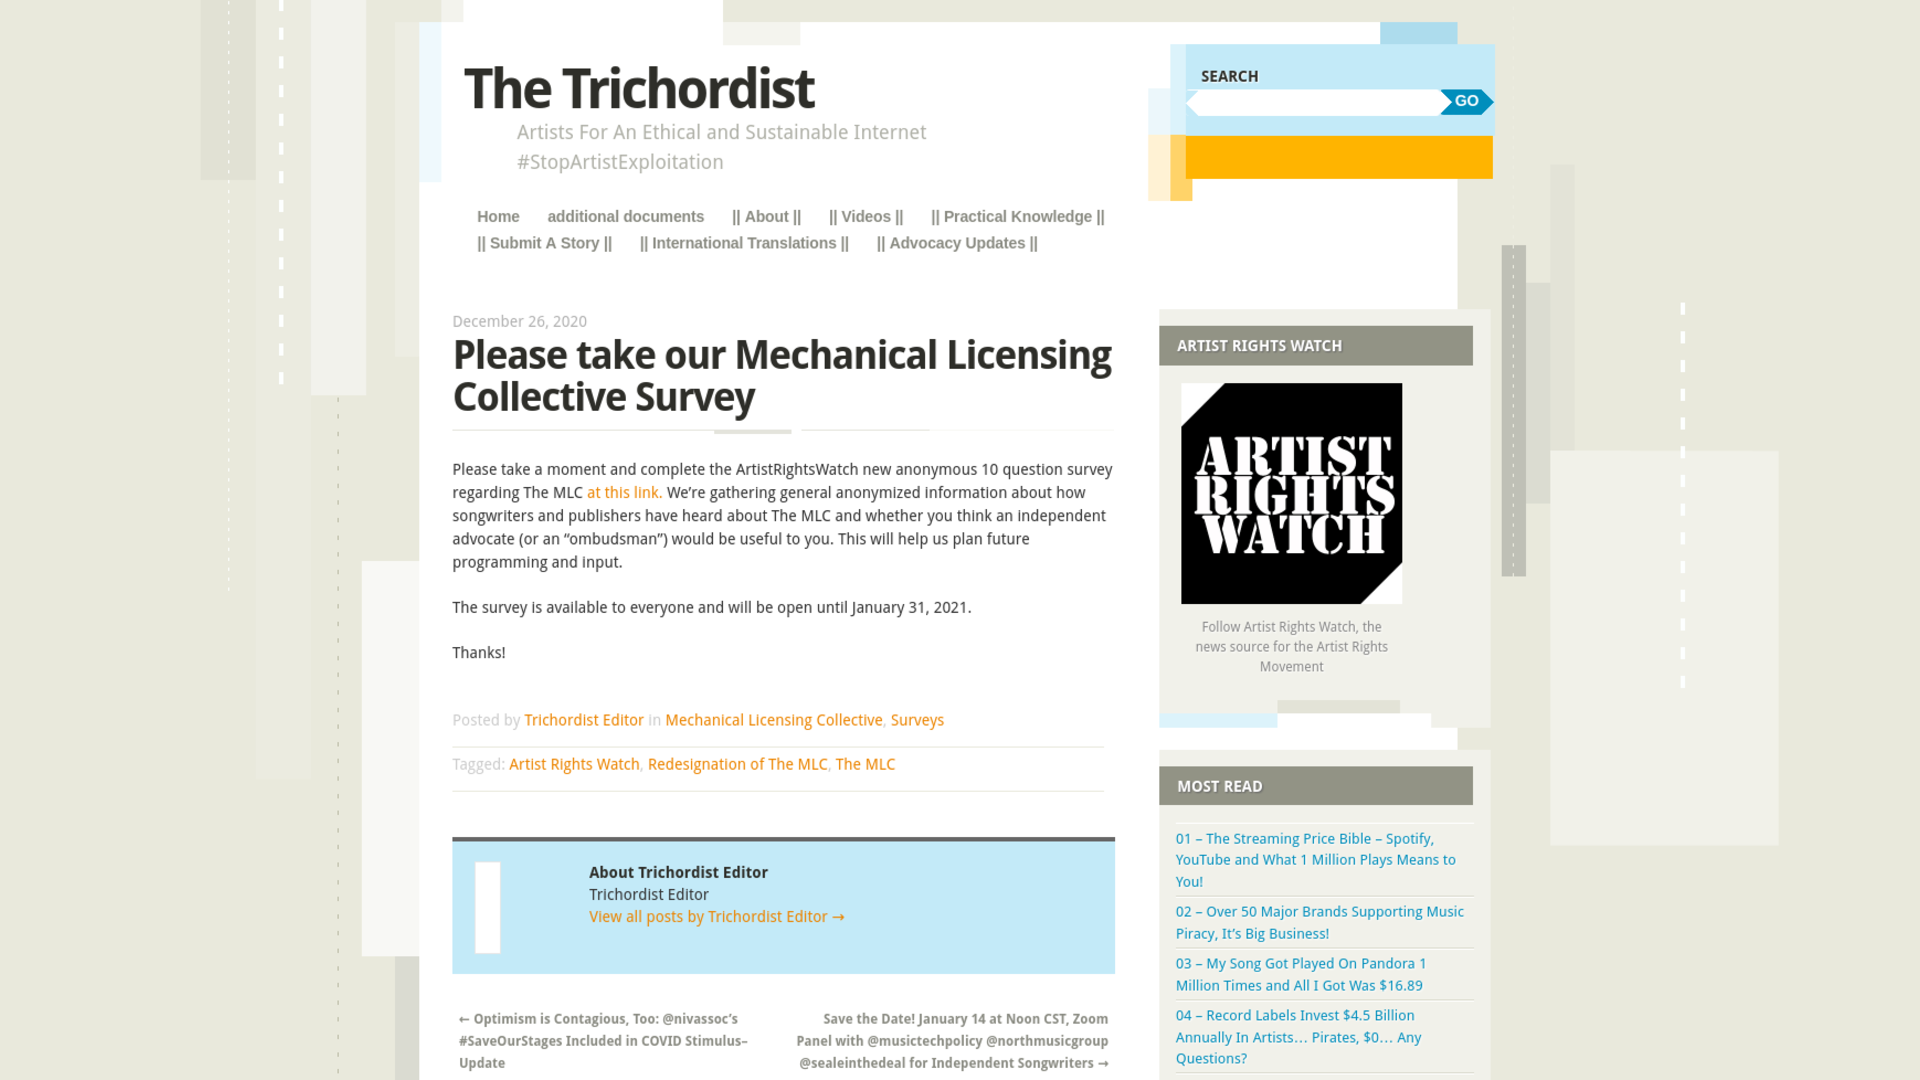 Fairness Rocks News Please take our Mechanical Licensing Collective Survey